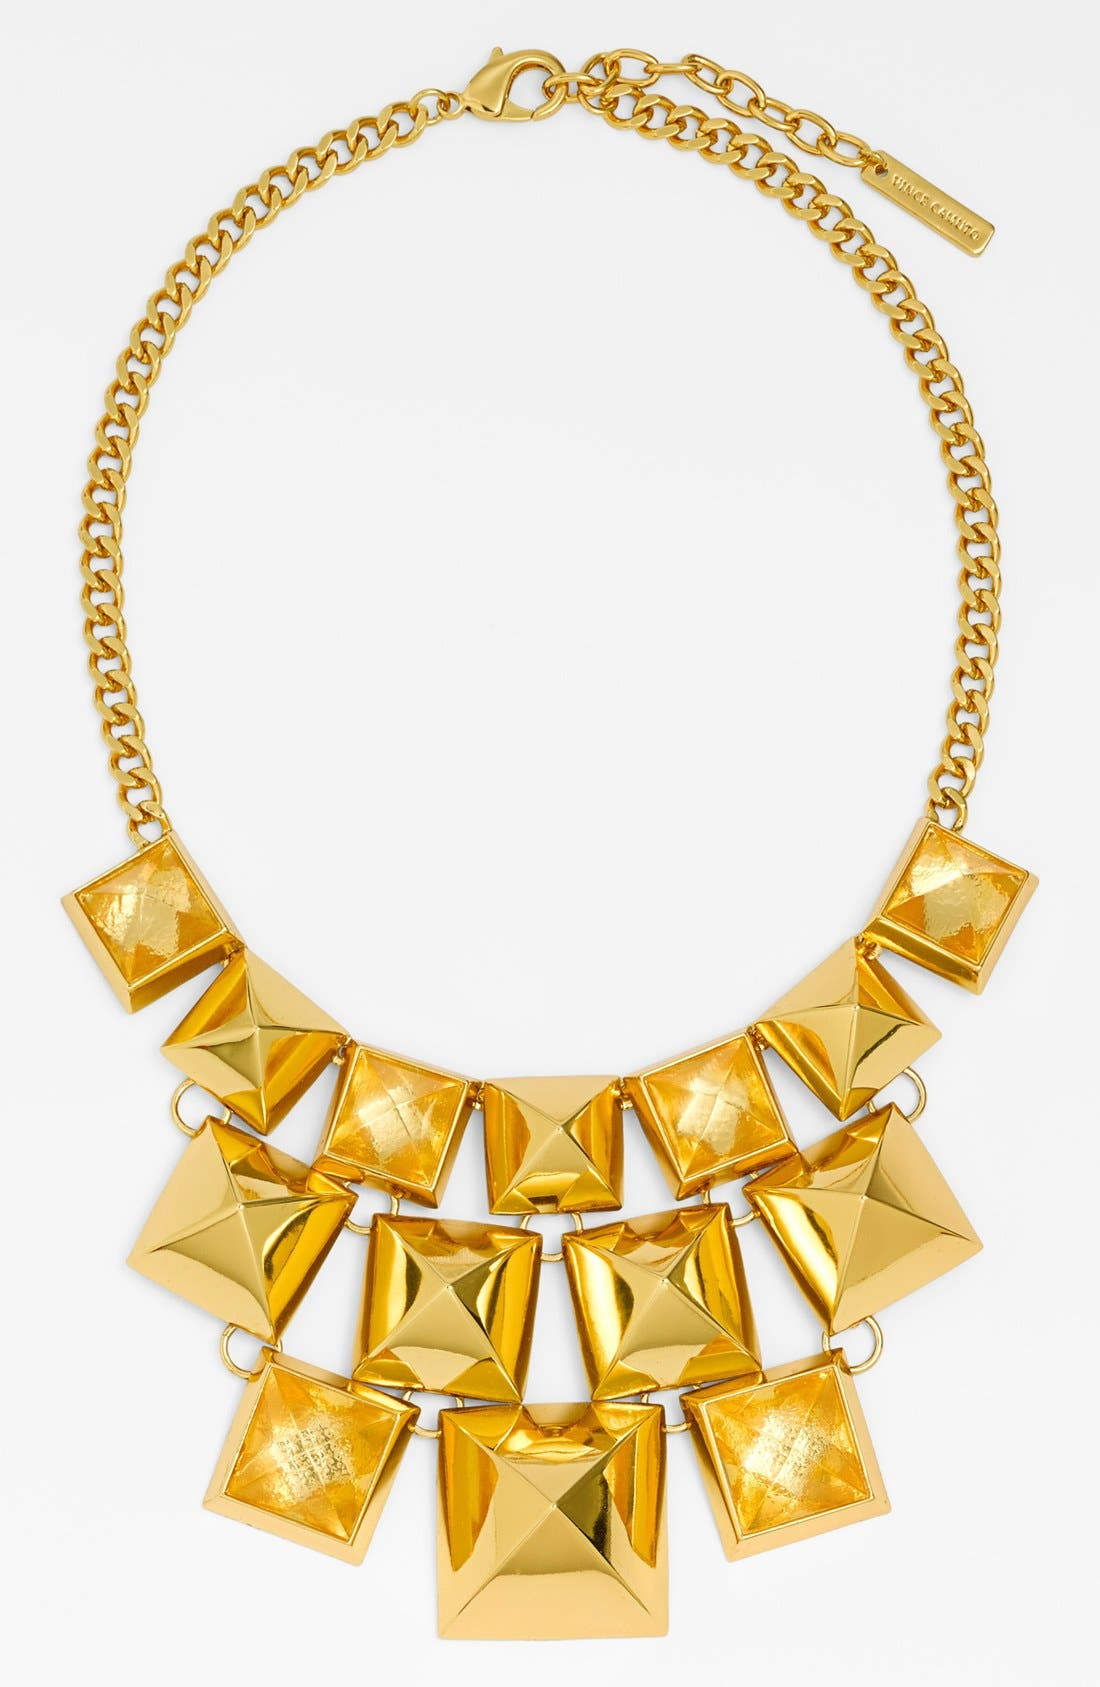 Alternate Image 1 Selected - Vince Camuto 'Clearview' Pyramid Statement Necklace